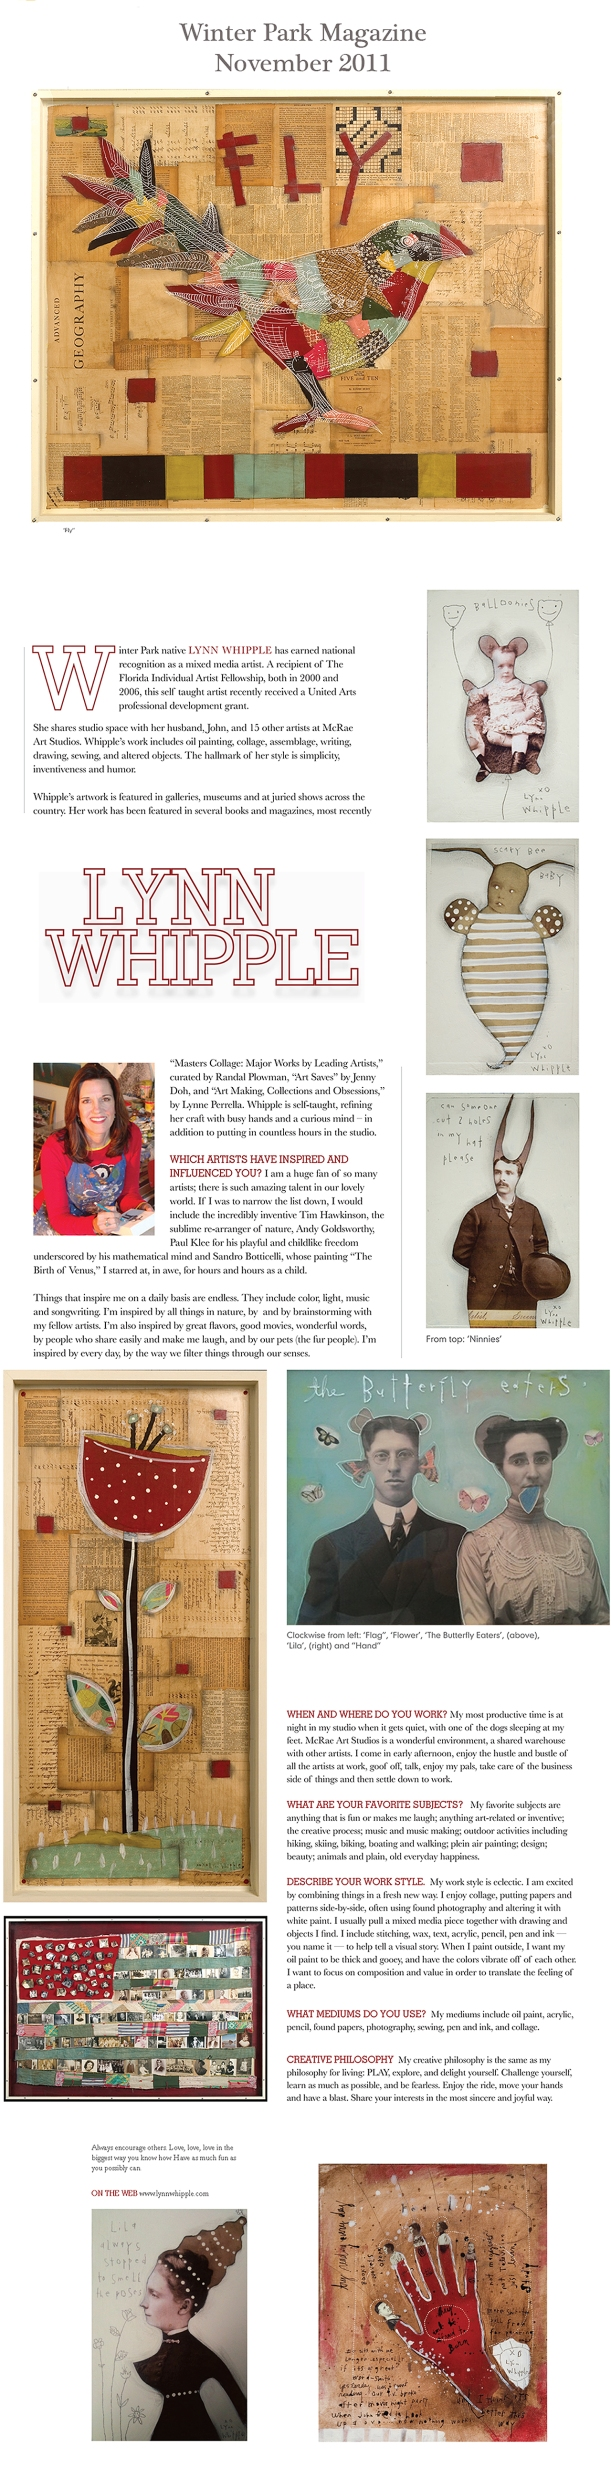 Winter Park Magazine Article November 2011